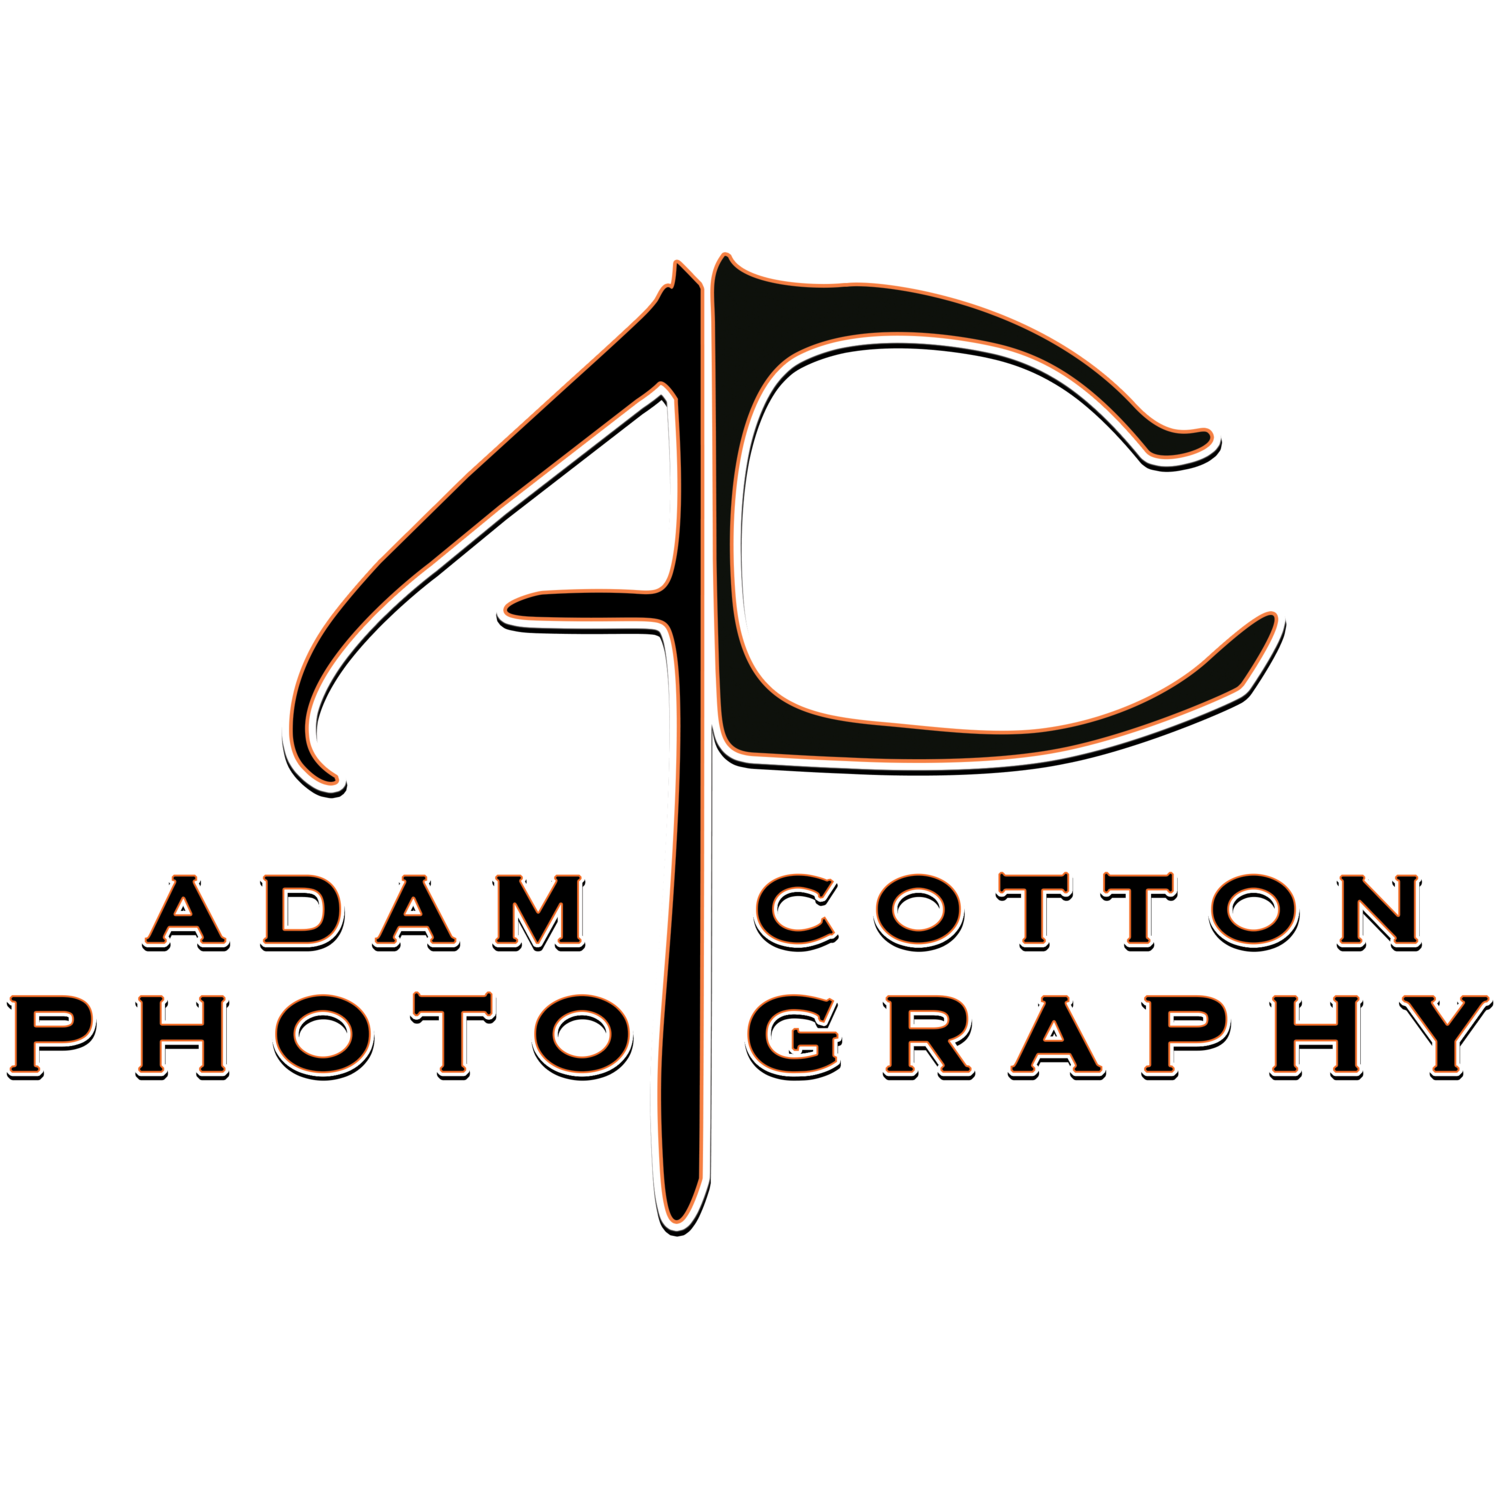 Wedding Photographer Adam Cotton of Pensacola, Florida